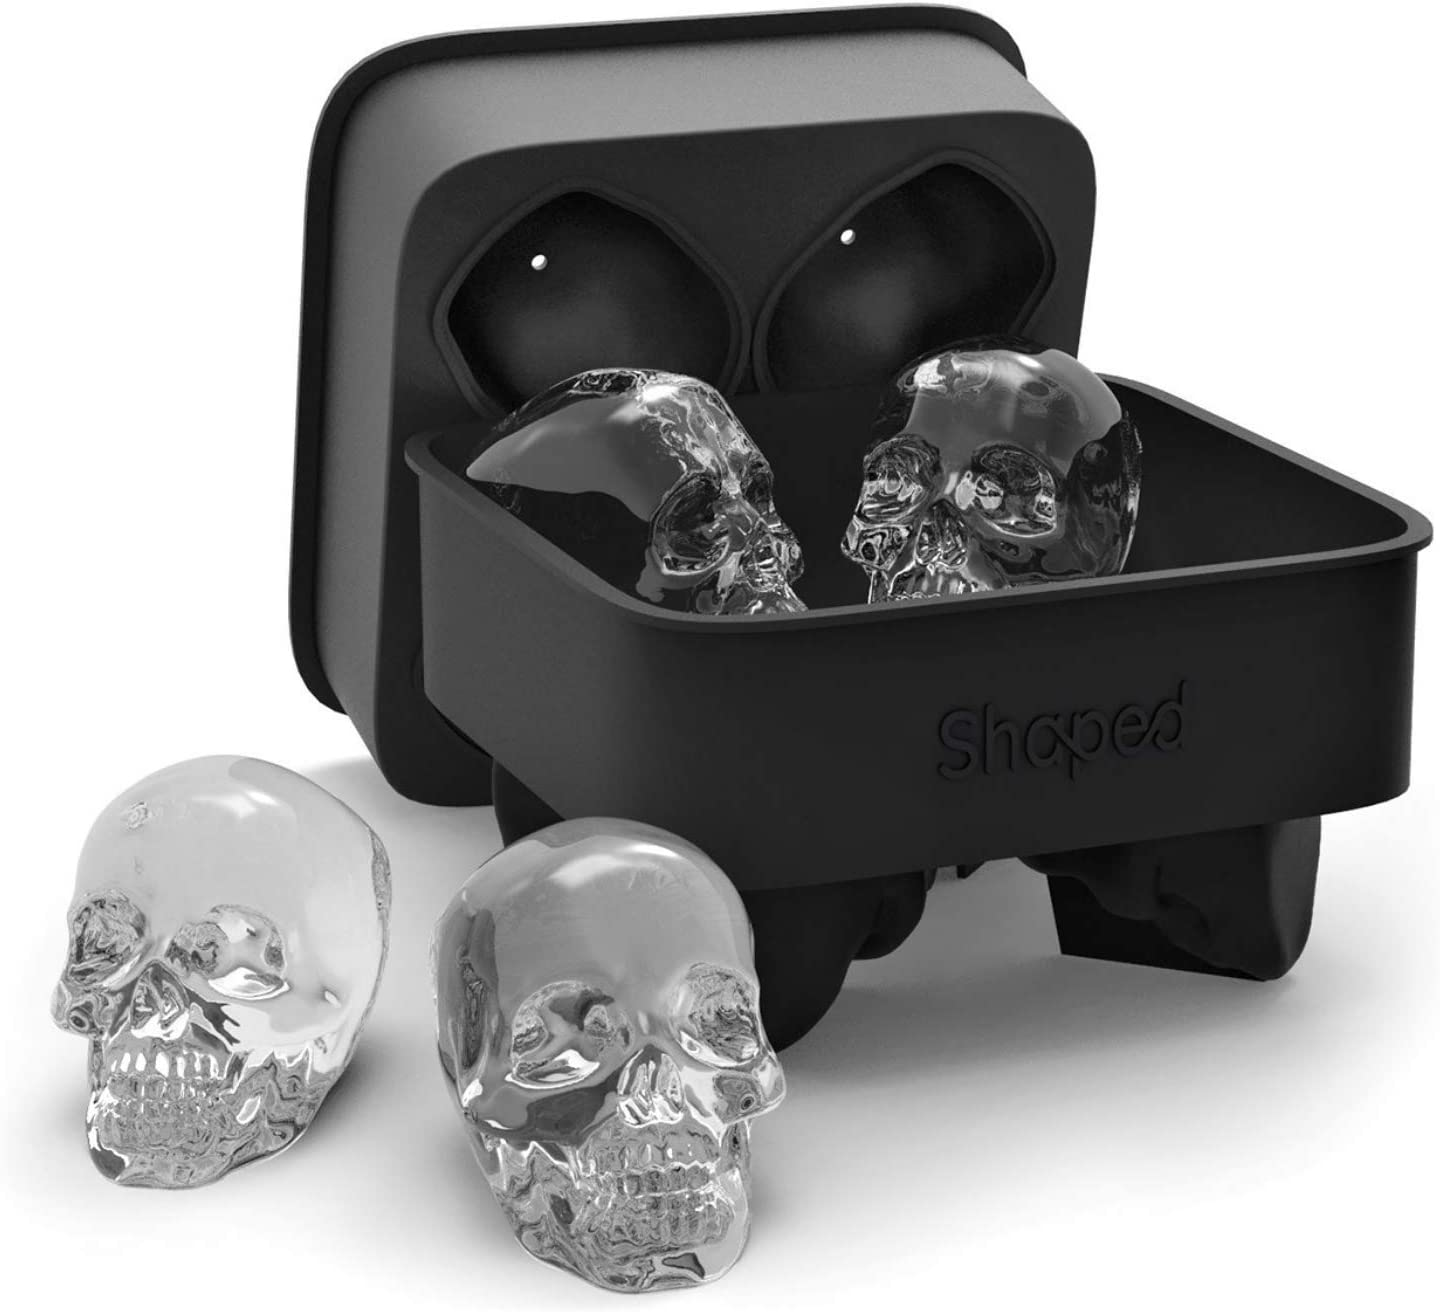 3D Skull Flexible Silicone Ice Cube Mold